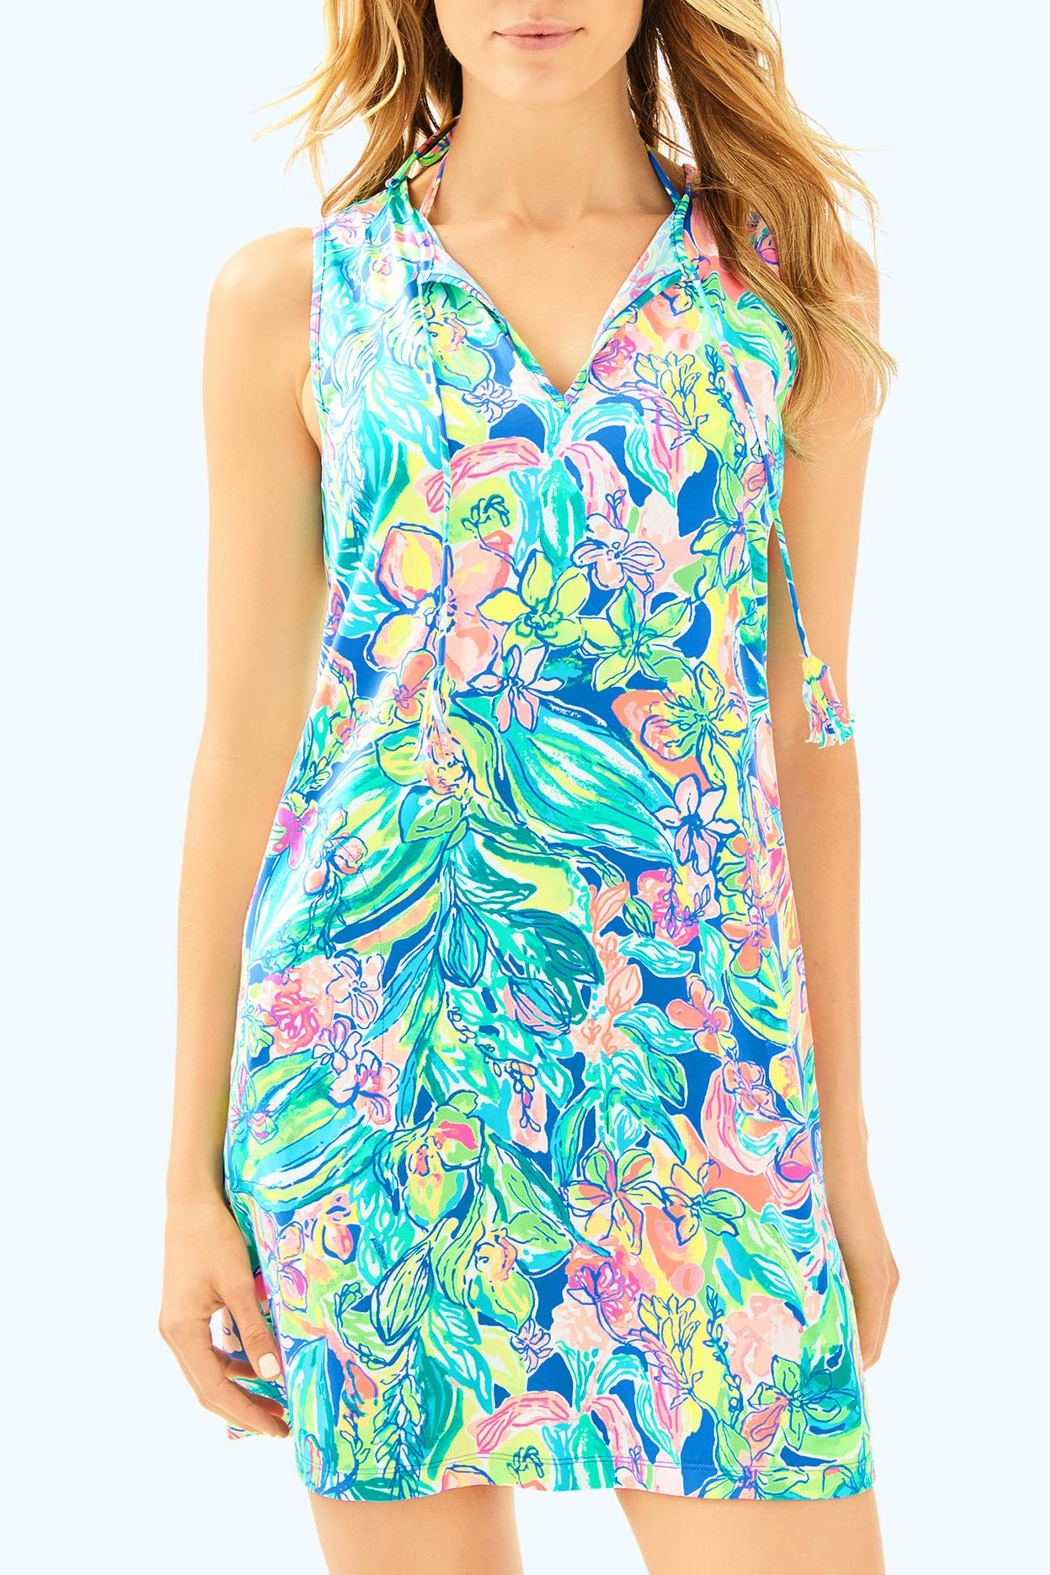 Lilly Pulitzer Johana Cover Up from Sandestin Golf and Beach Resort ...